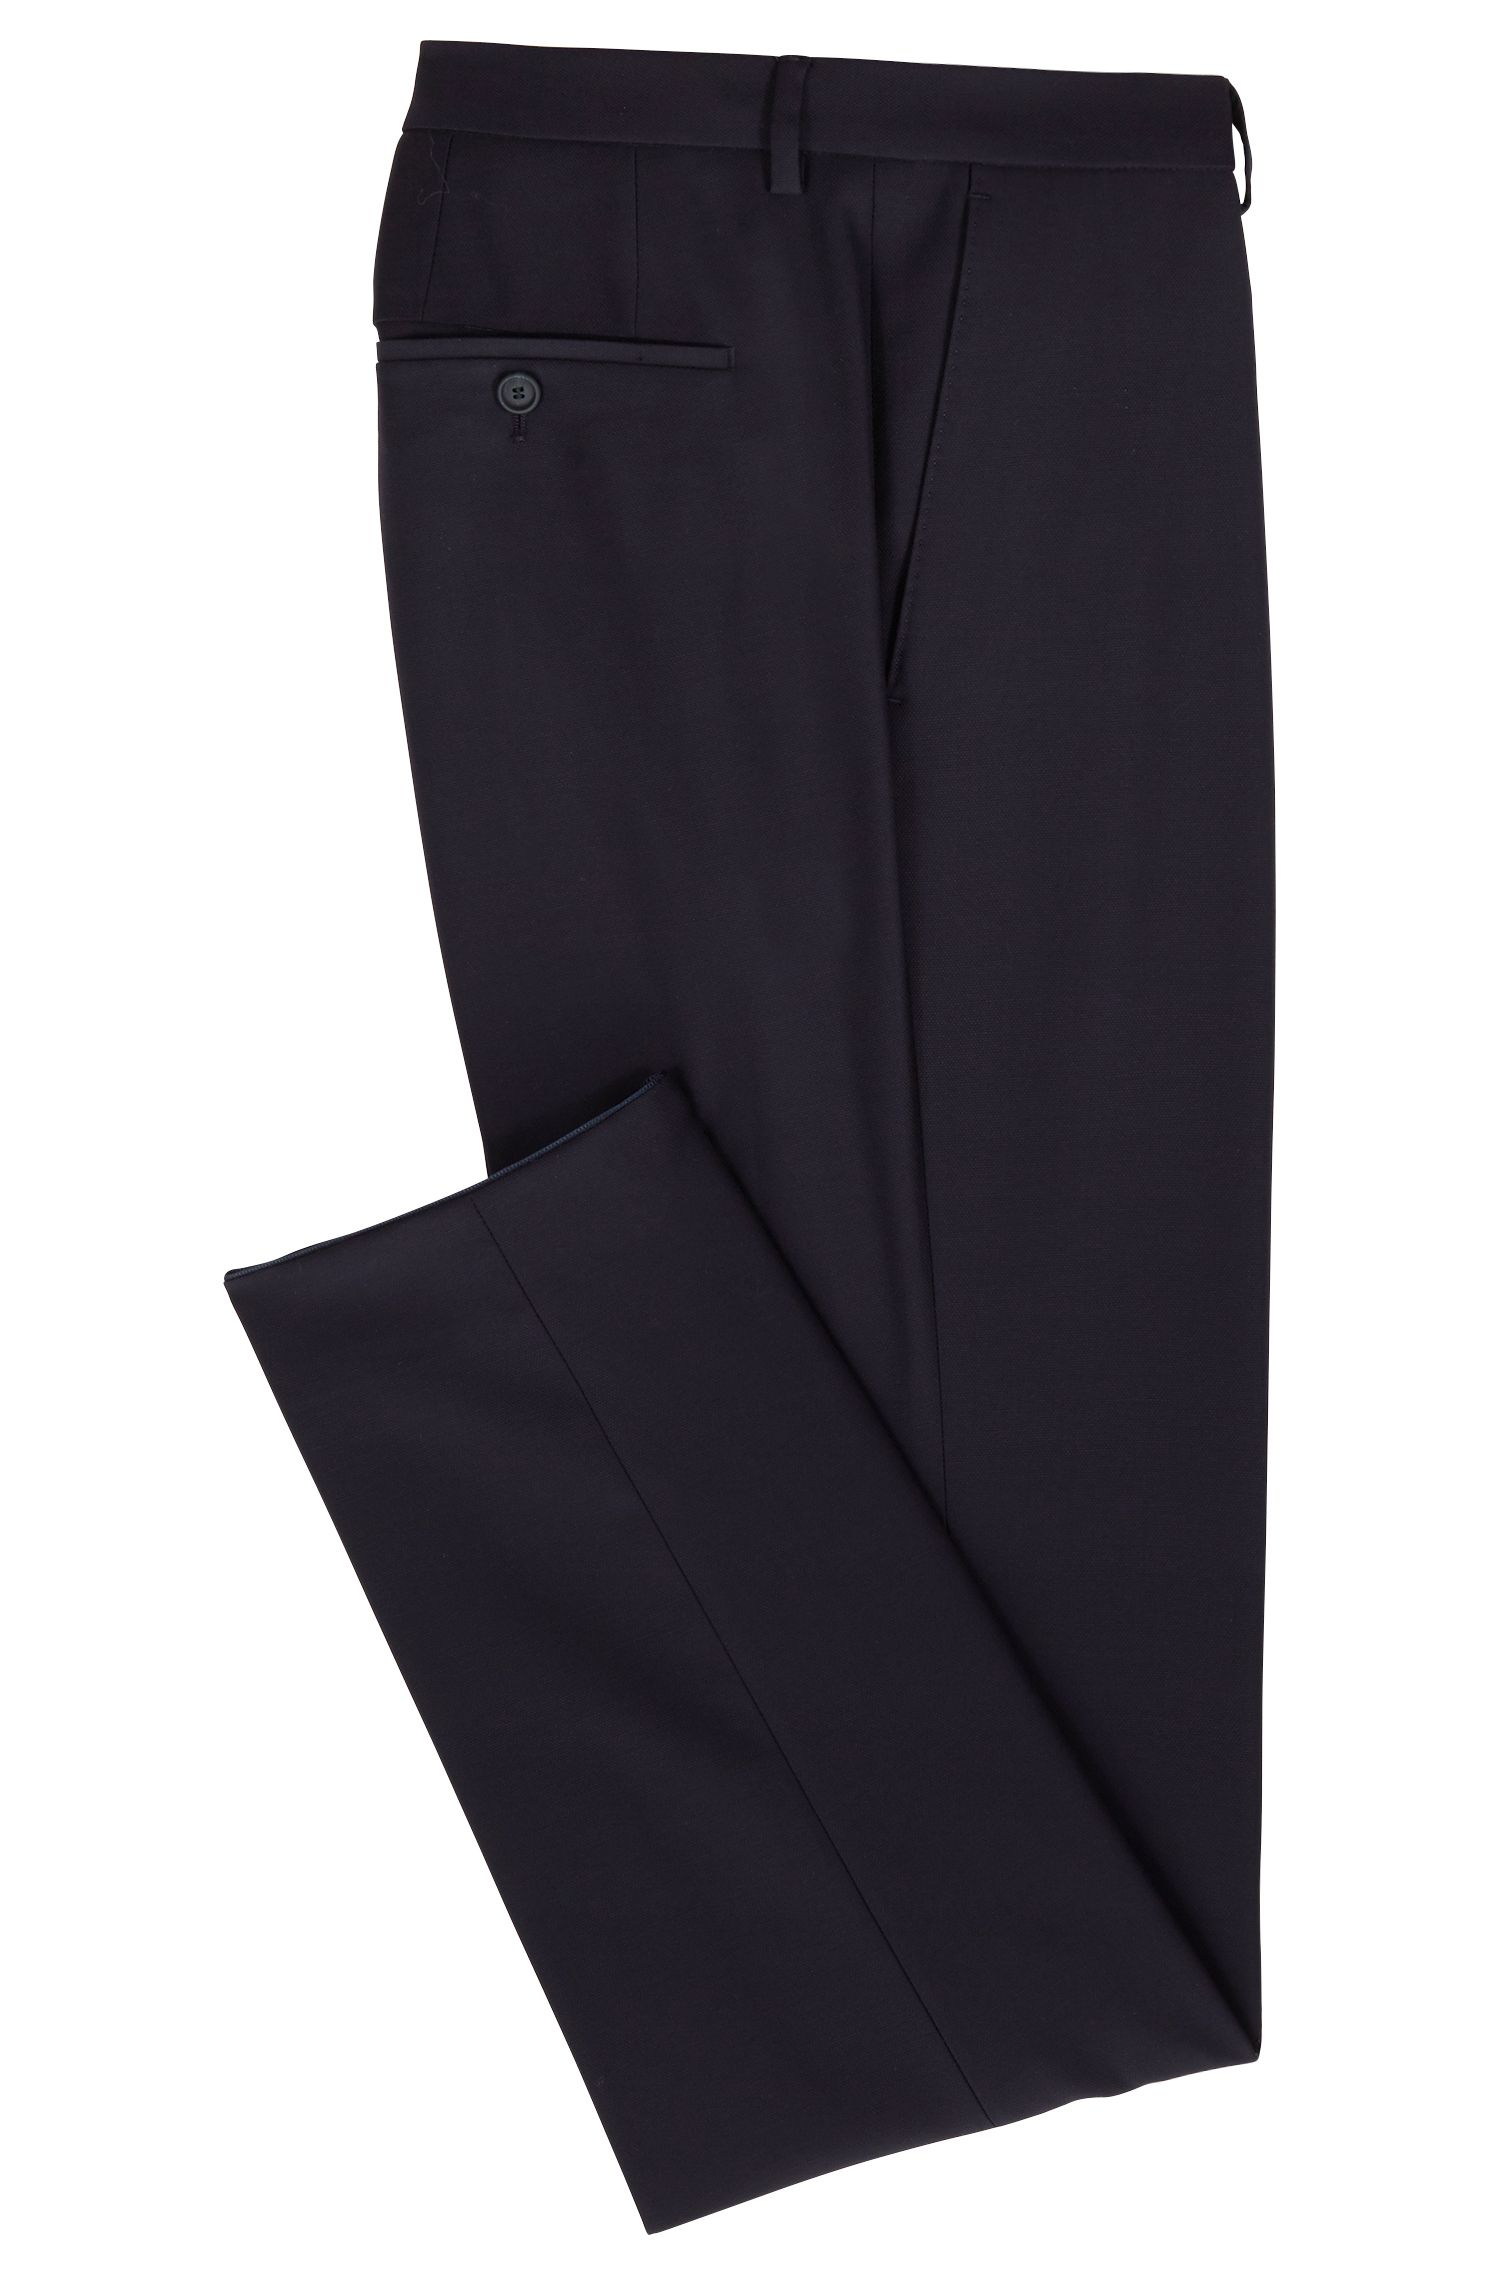 Pantaloni slim fit in lana vergine lavabile, Blu scuro